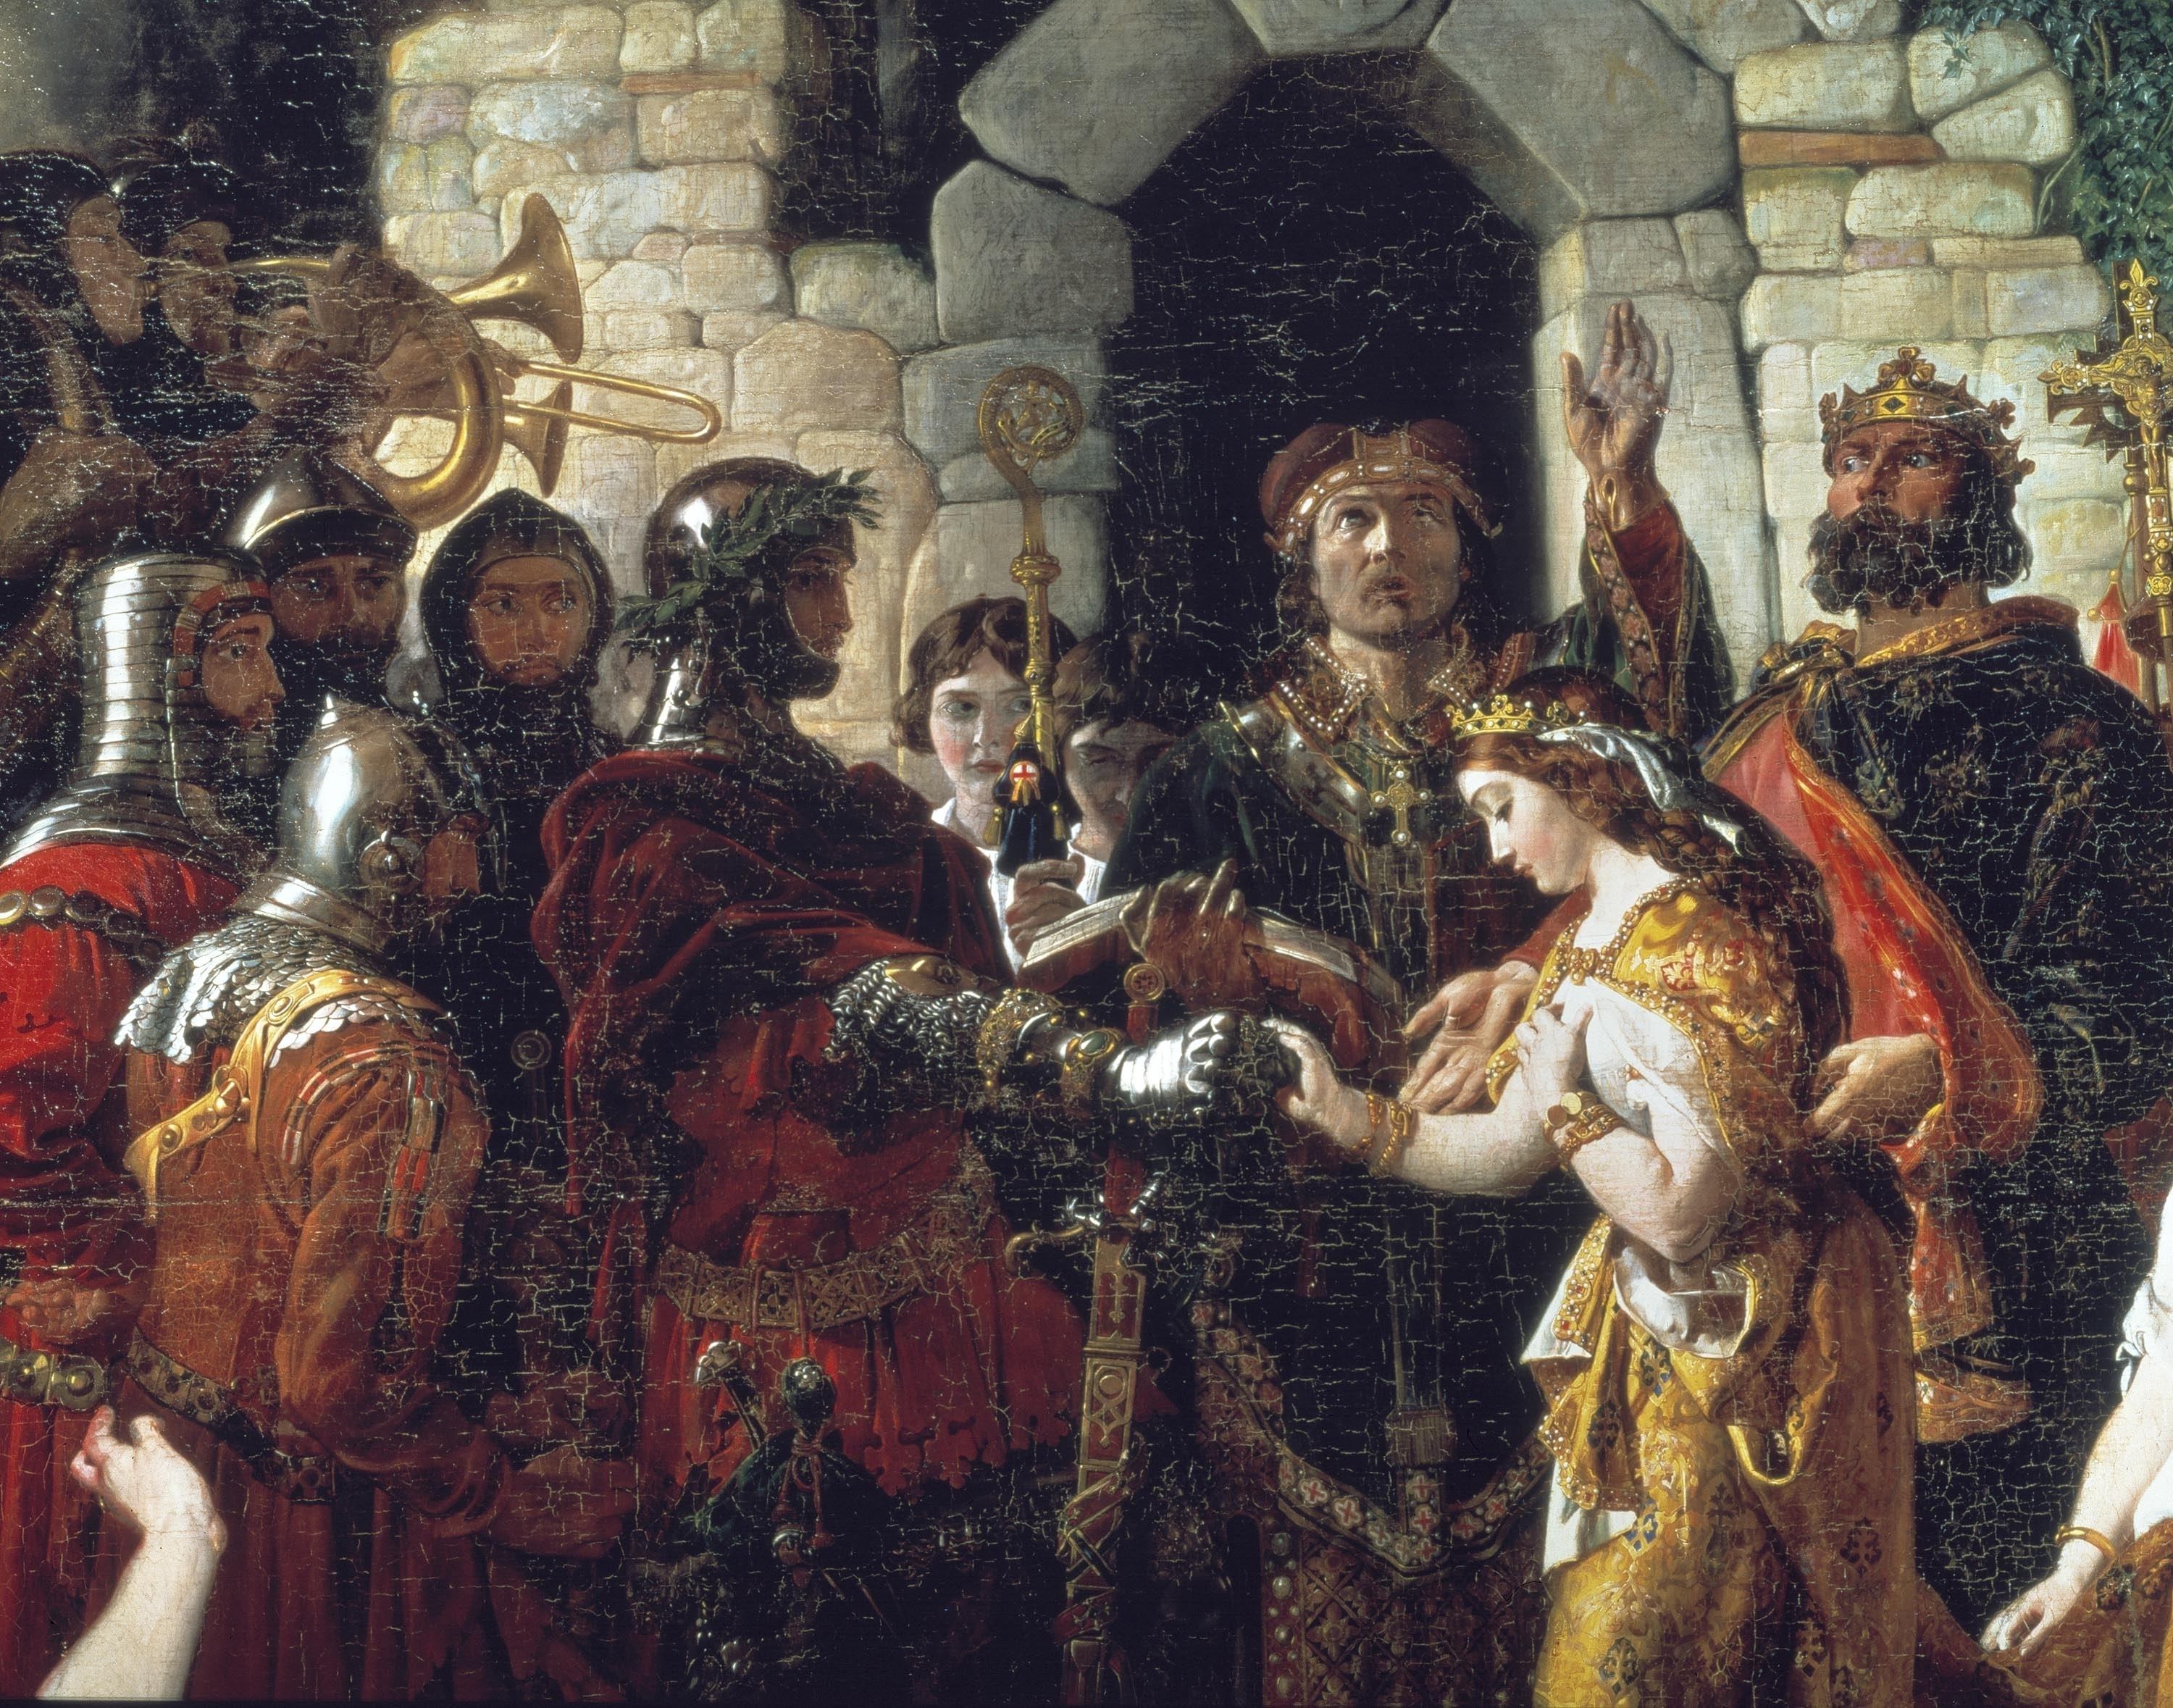 The Marriage of Strongbow and Aoife by Cork born historical painter Daniel Maclise (1806-1870) at the National Gallery of Ireland